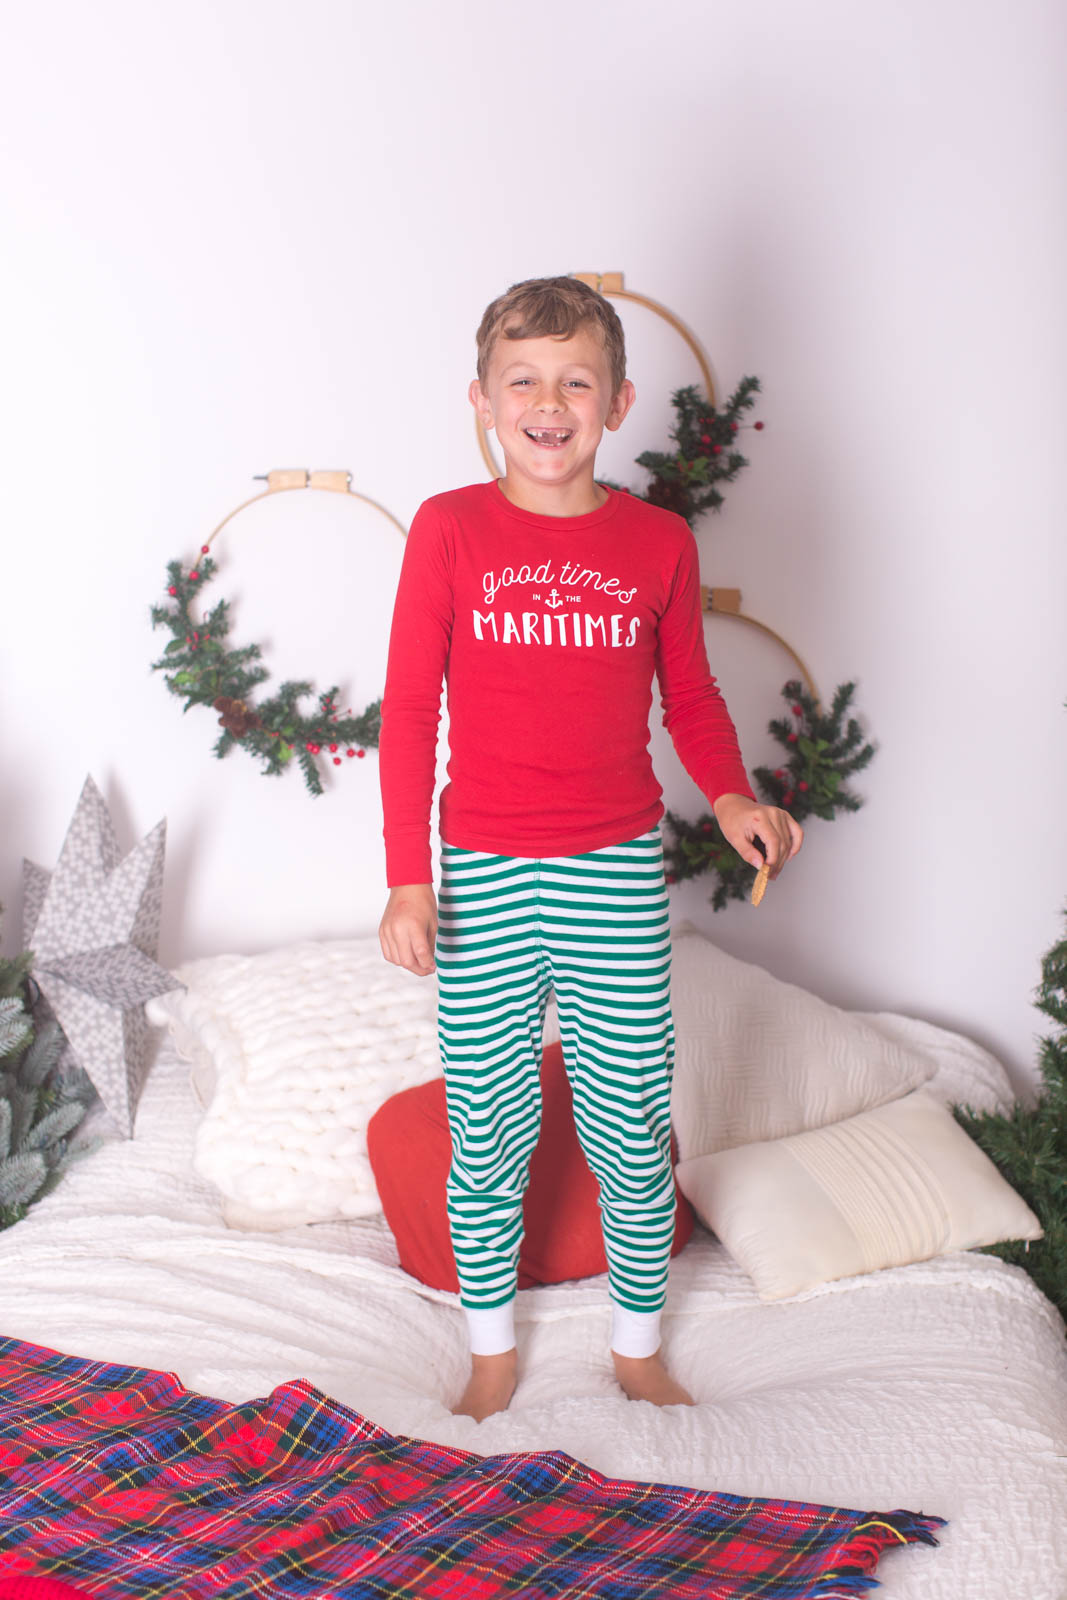 Image of boy laughing and jumping on the bed